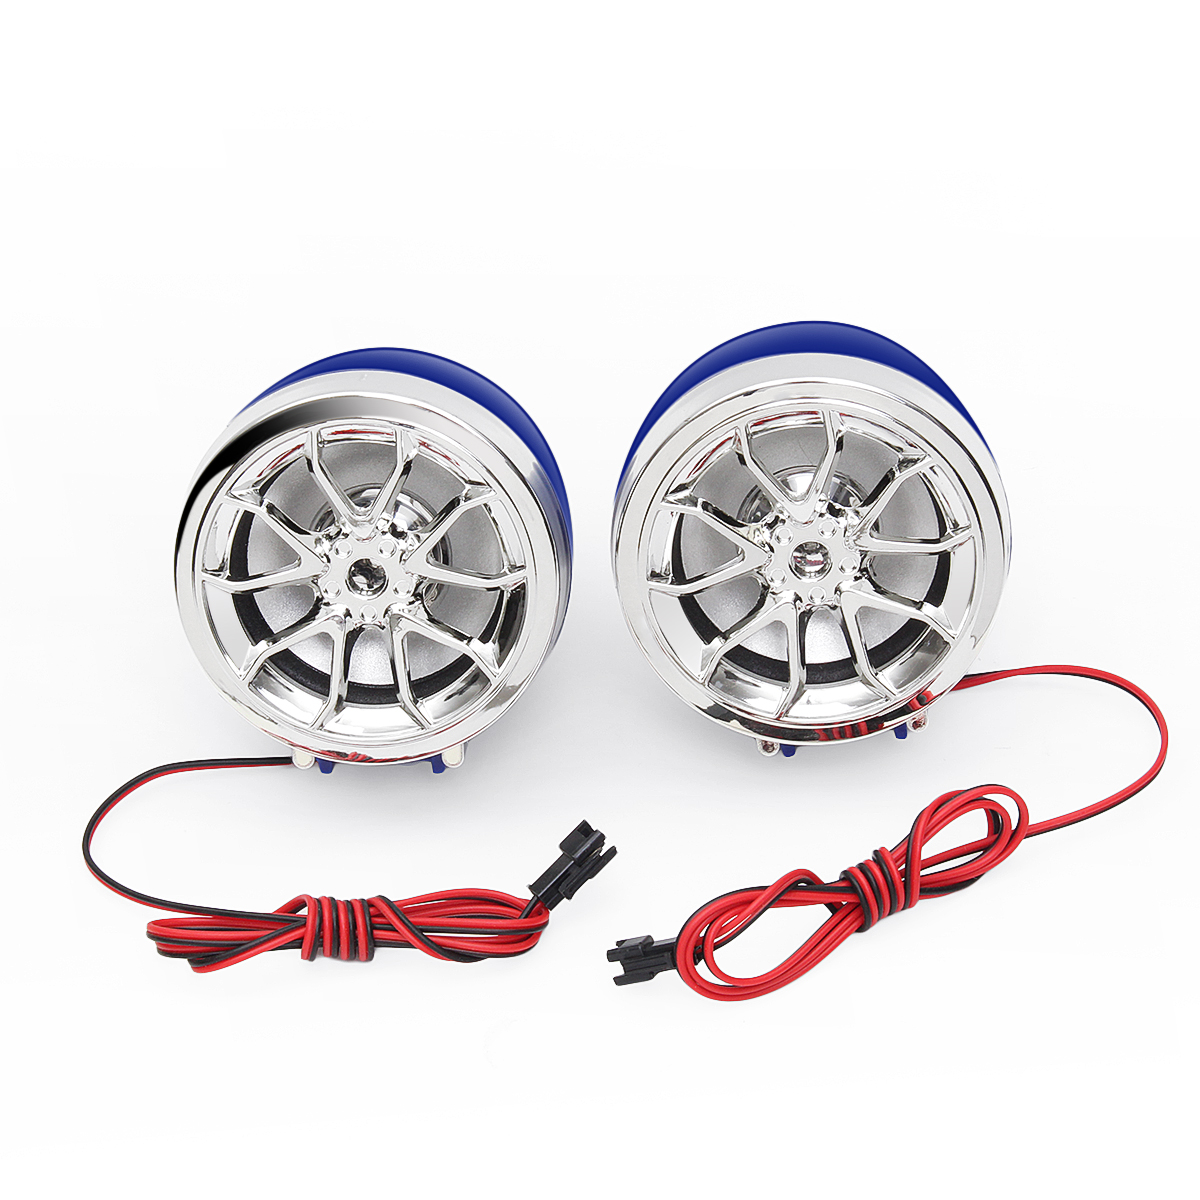 Motorcycle Audio MP3 USB Radio System Stereo Speaker Amplifier Waterproof With bluetooth Function